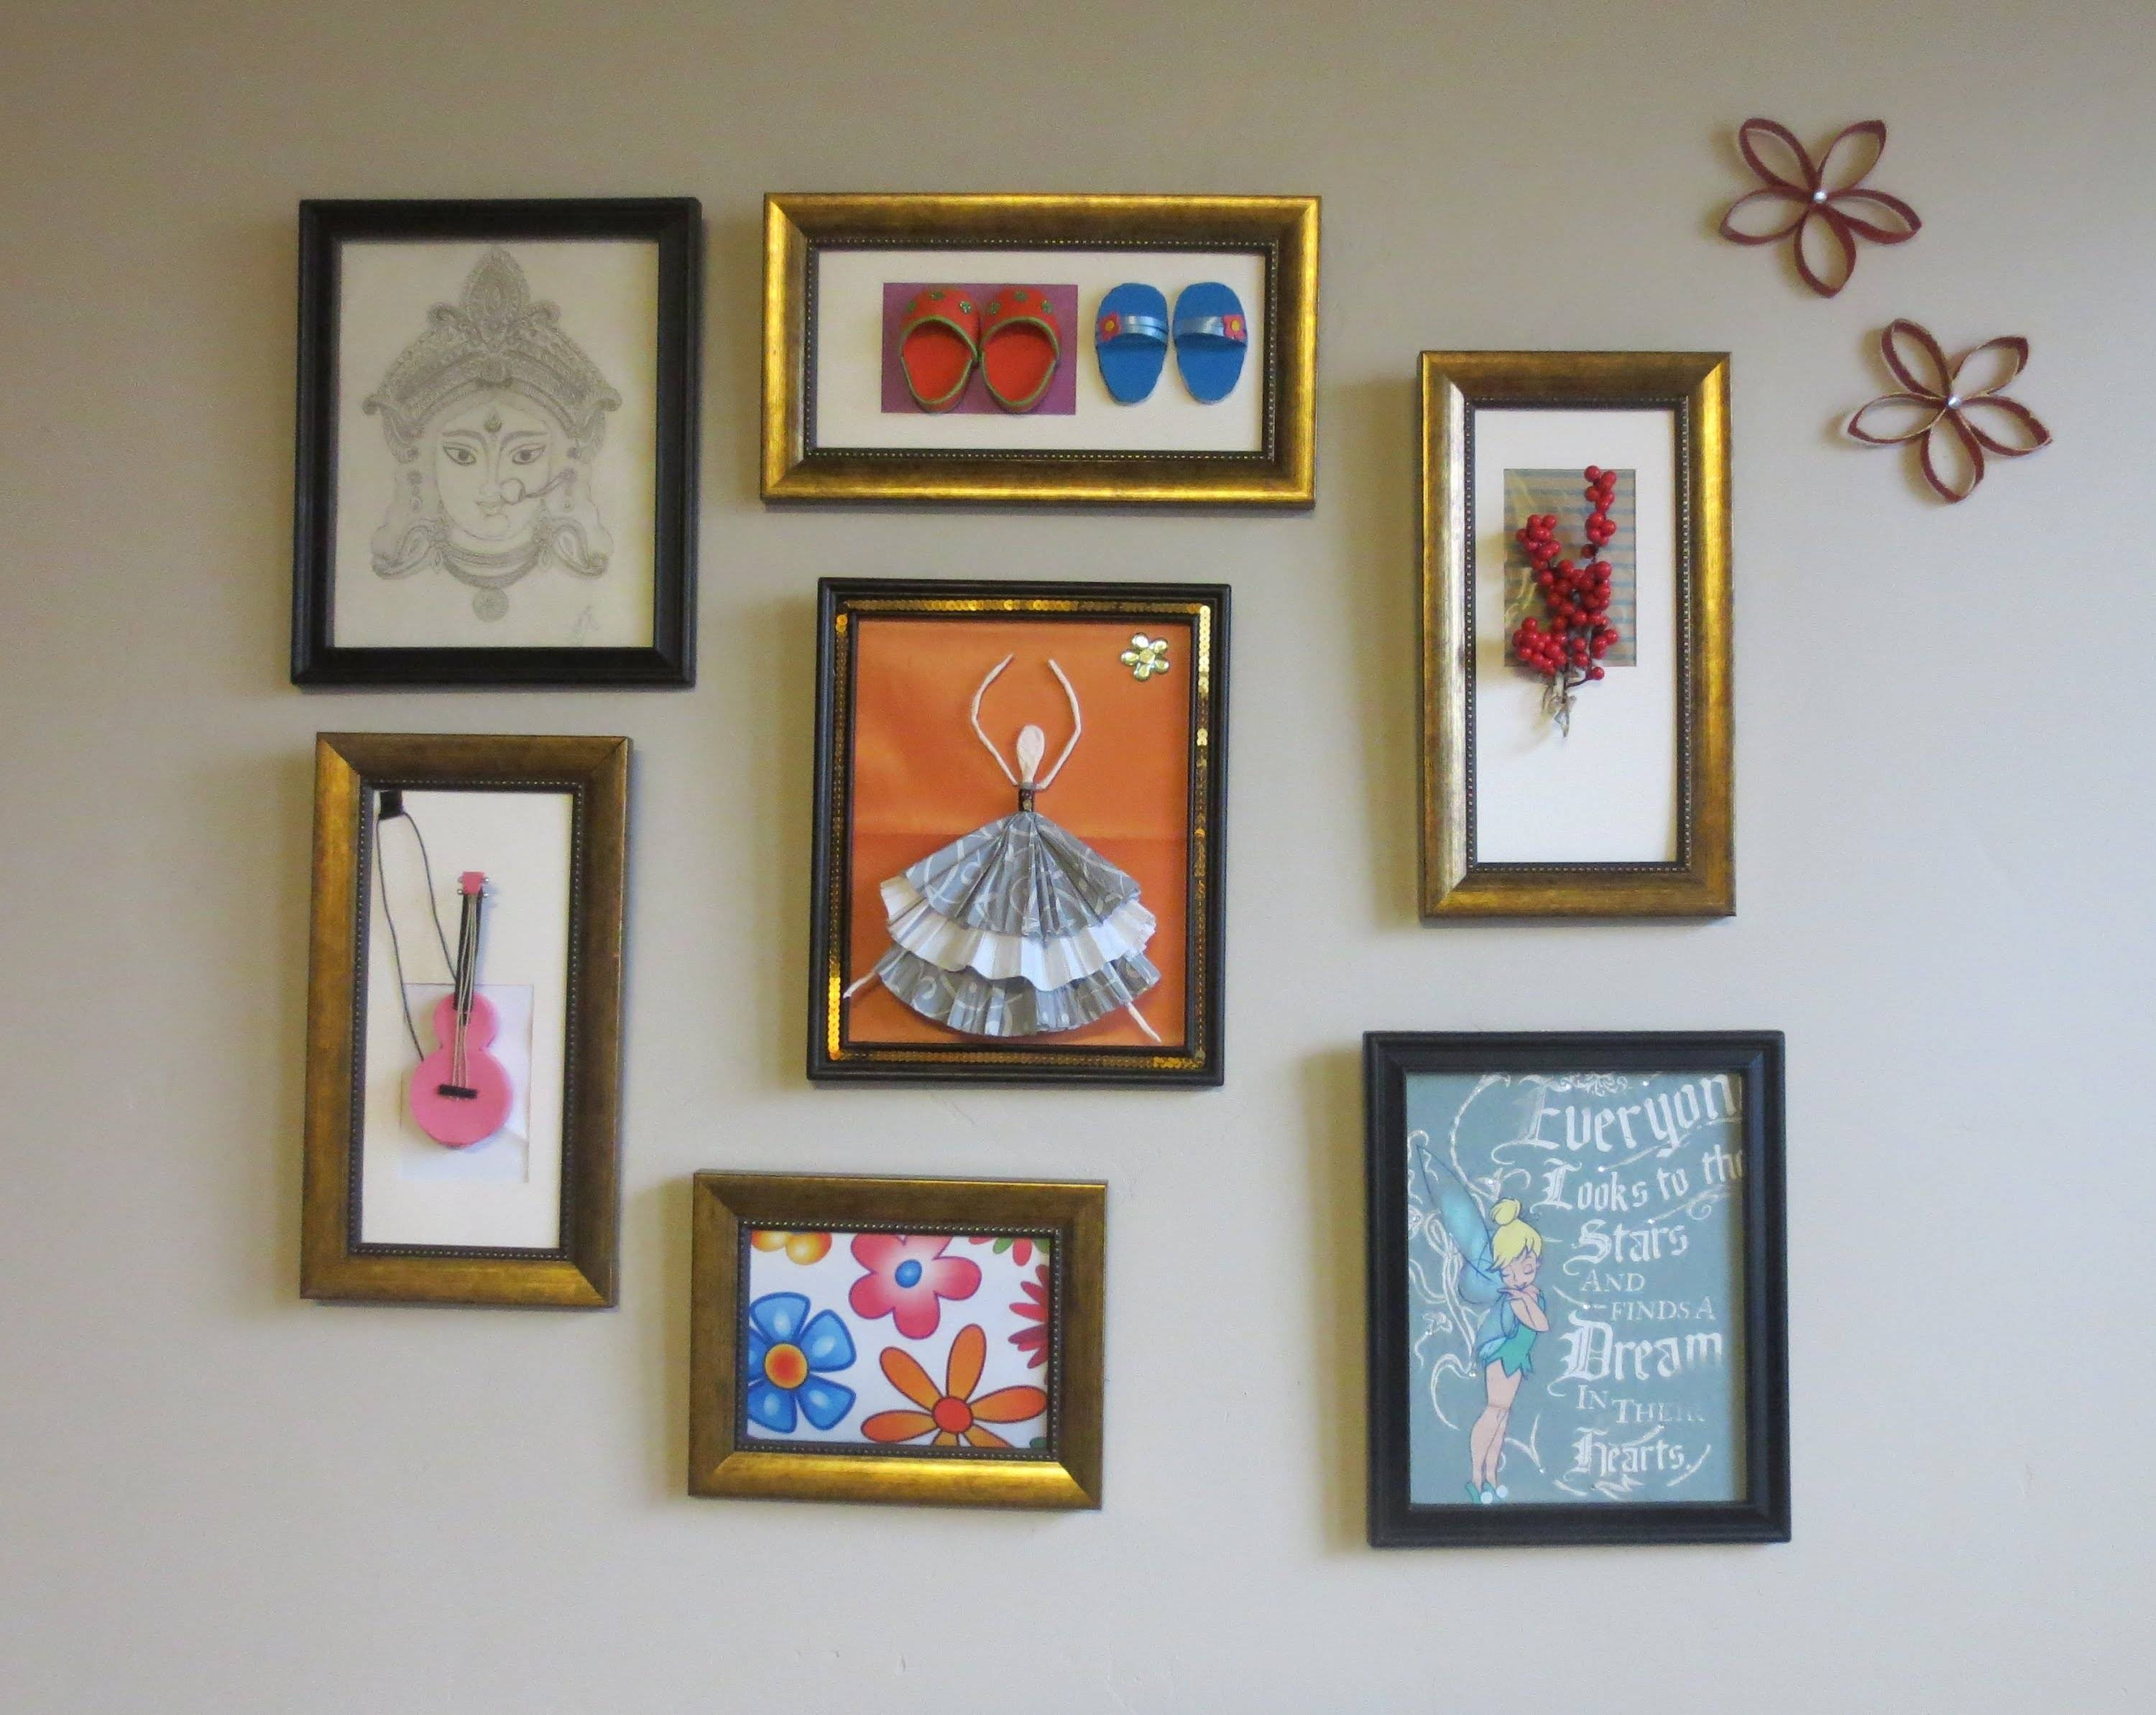 Home Decor : Tshirt Graphic & 3d Wall Art Picture Frame Collage Inside Most Recent 3d Visual Wall Art (View 7 of 20)